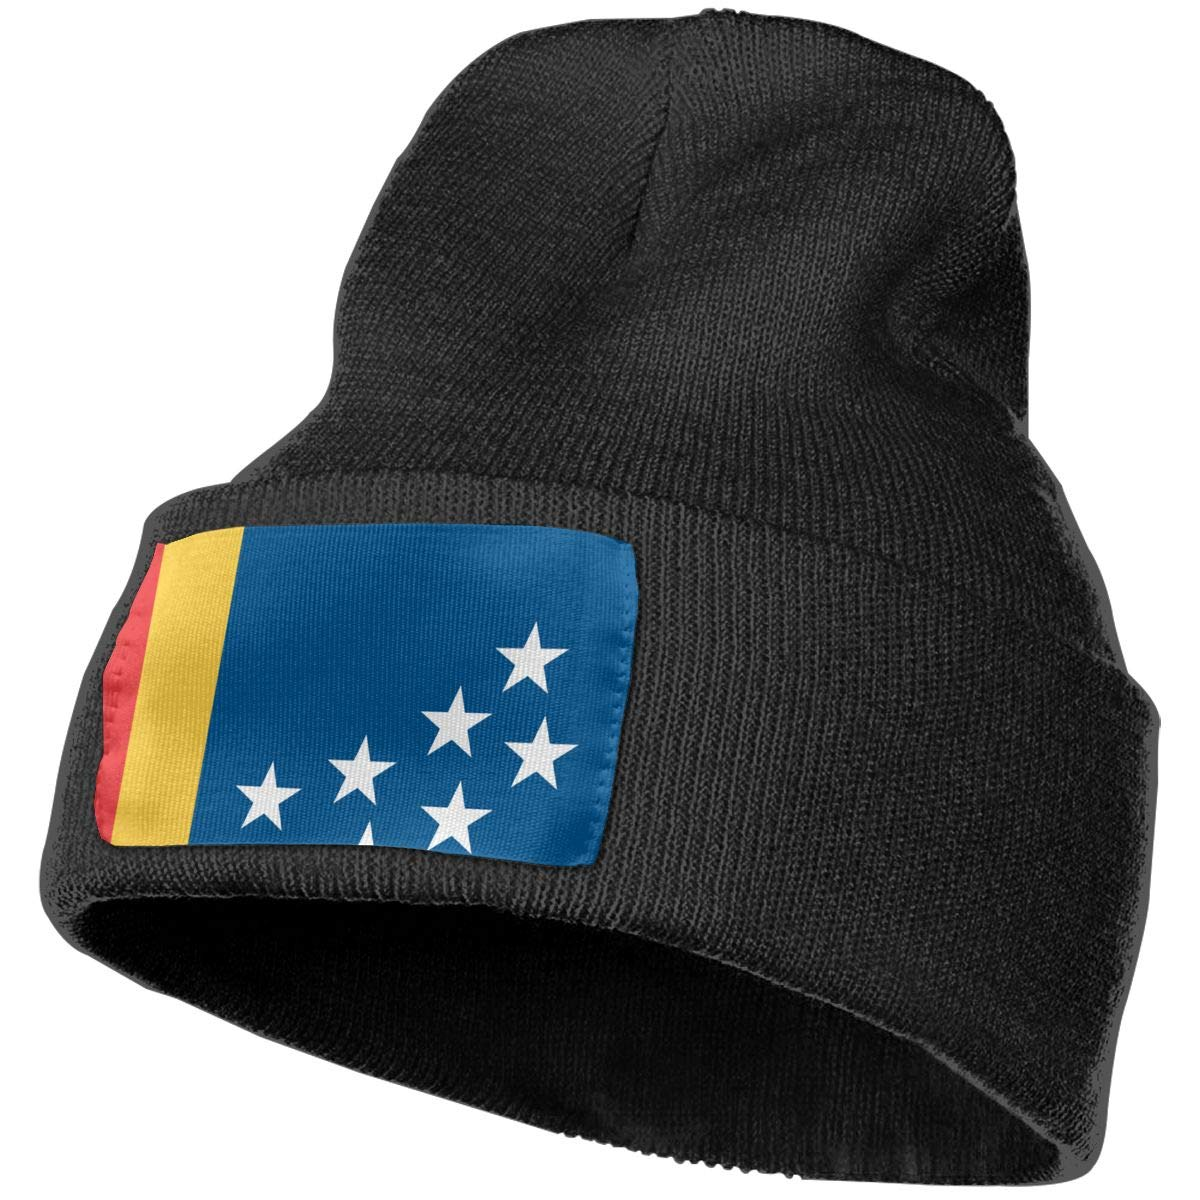 Flag of Durham Hat for Men and Women Winter Warm Hats Knit Slouchy Thick Skull Cap